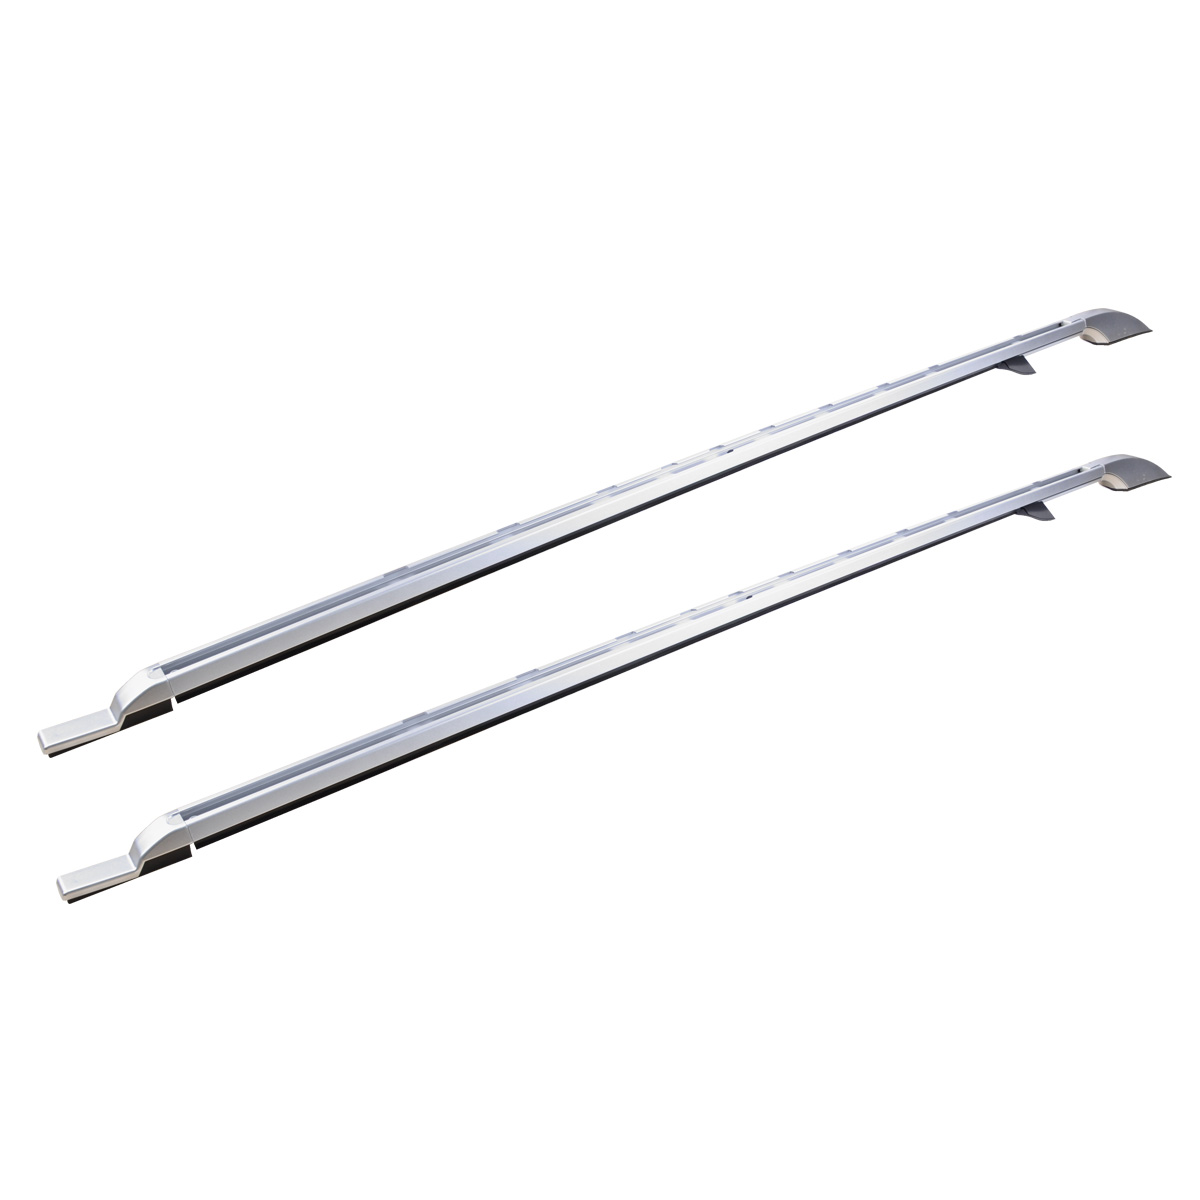 Silver Aluminum Roof Rack Extended Side Rail Carrier For